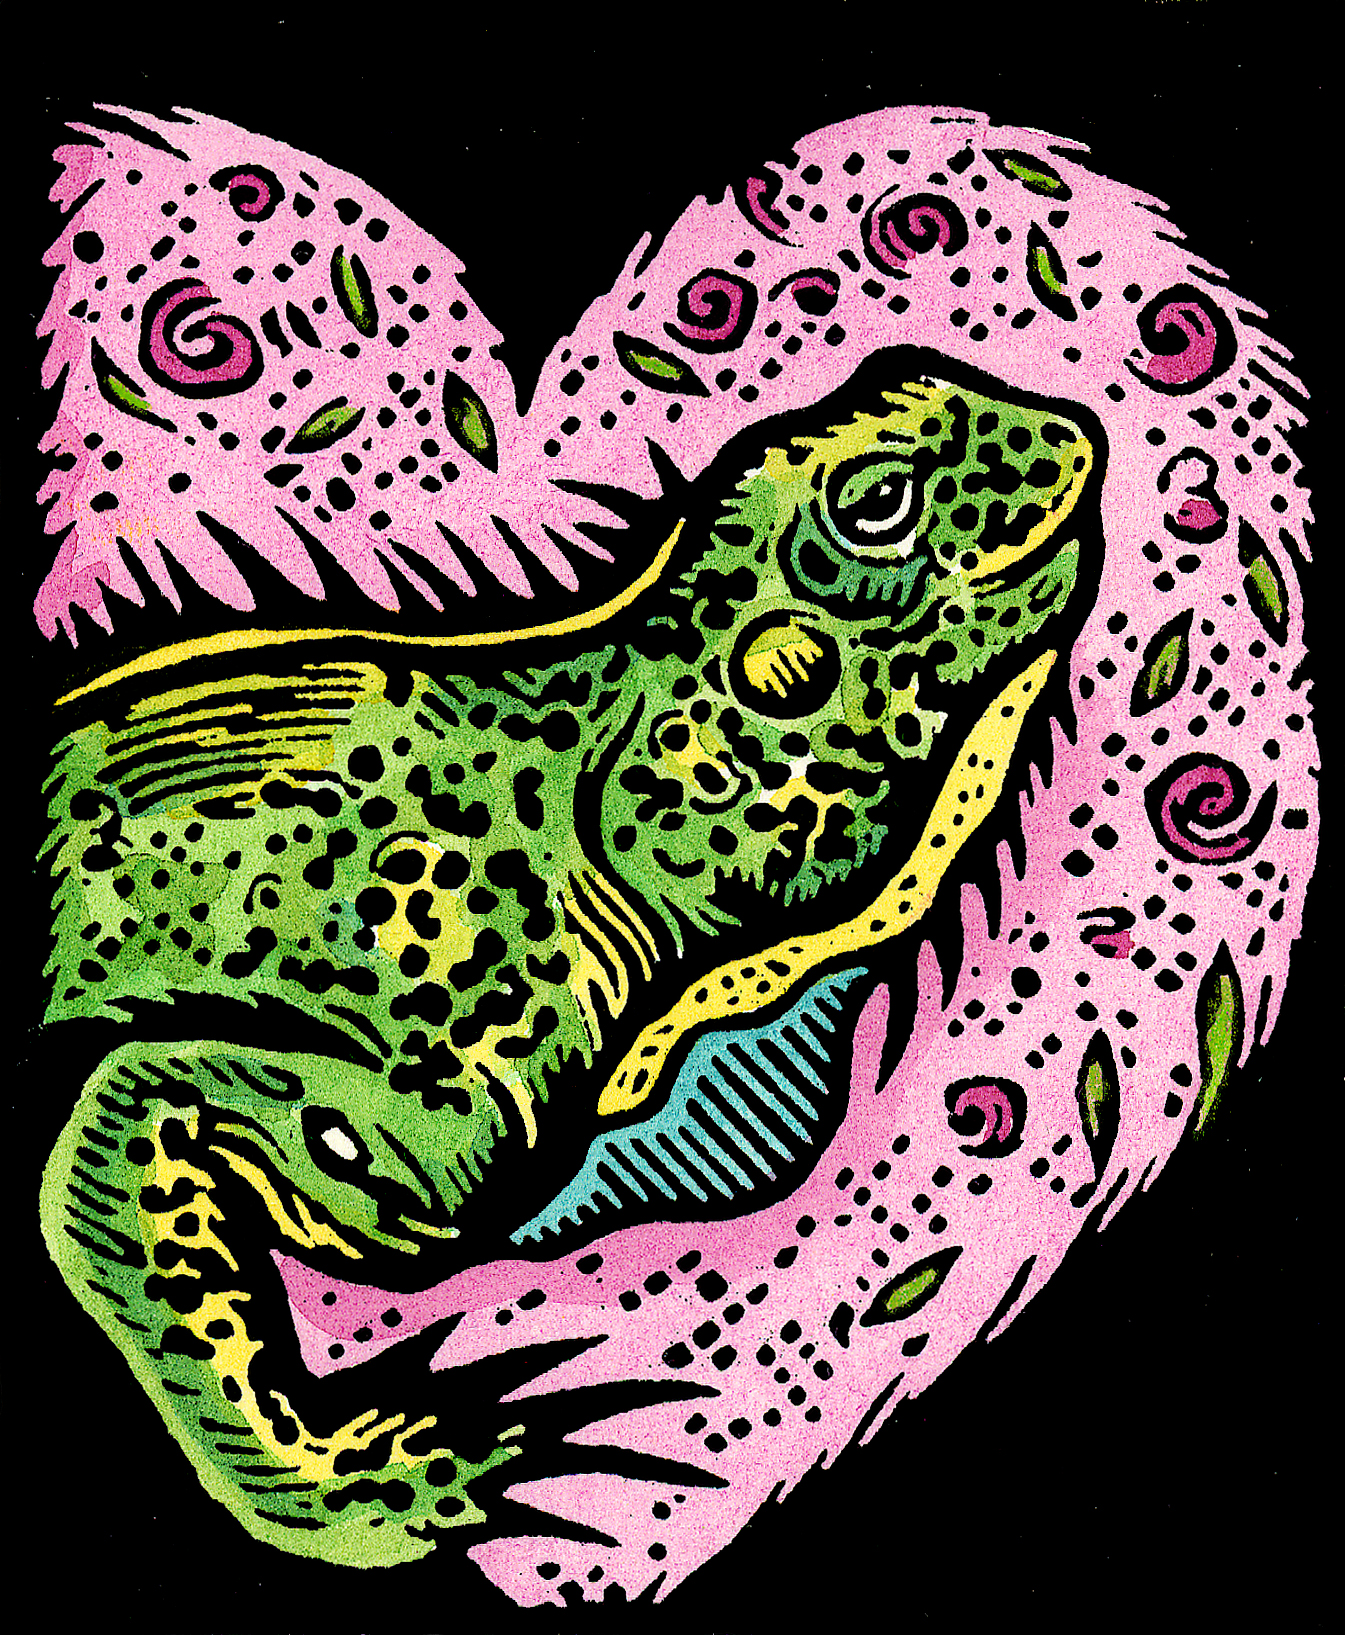 Iguana Bask in Your Love